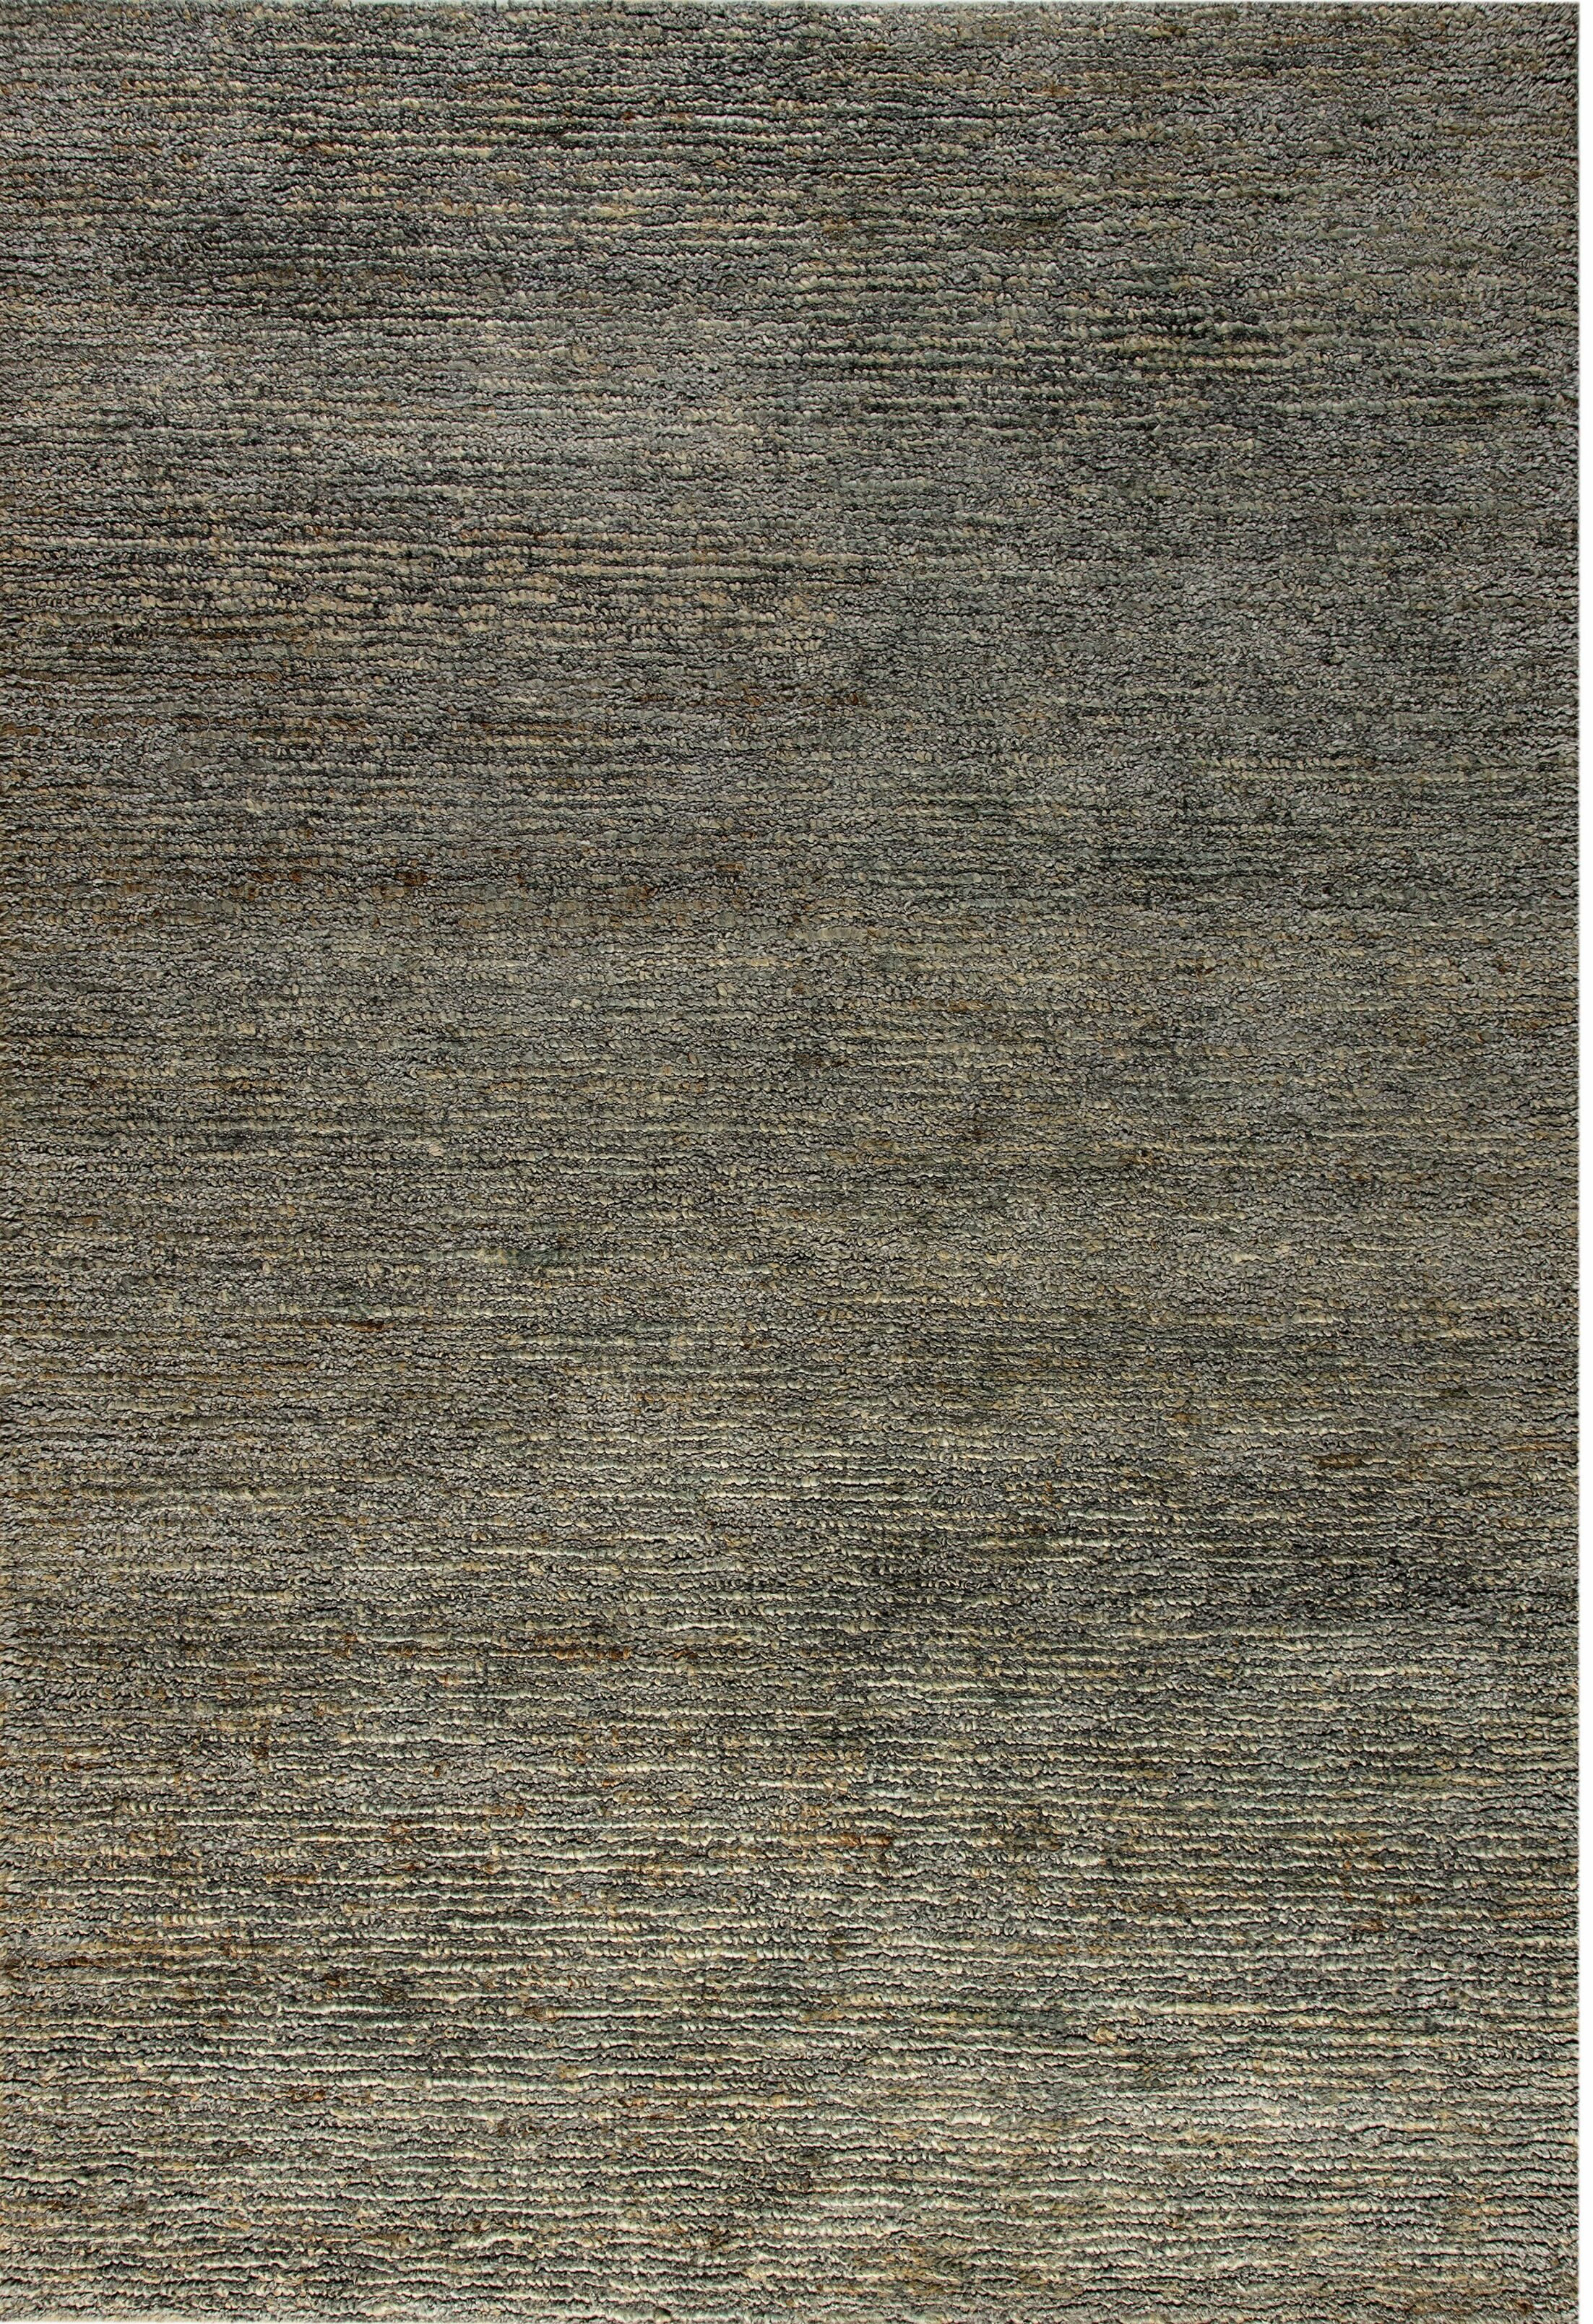 Gem Hand-Woven Light Gray Area Rug Rug Size: Rectangle 4' x 6'